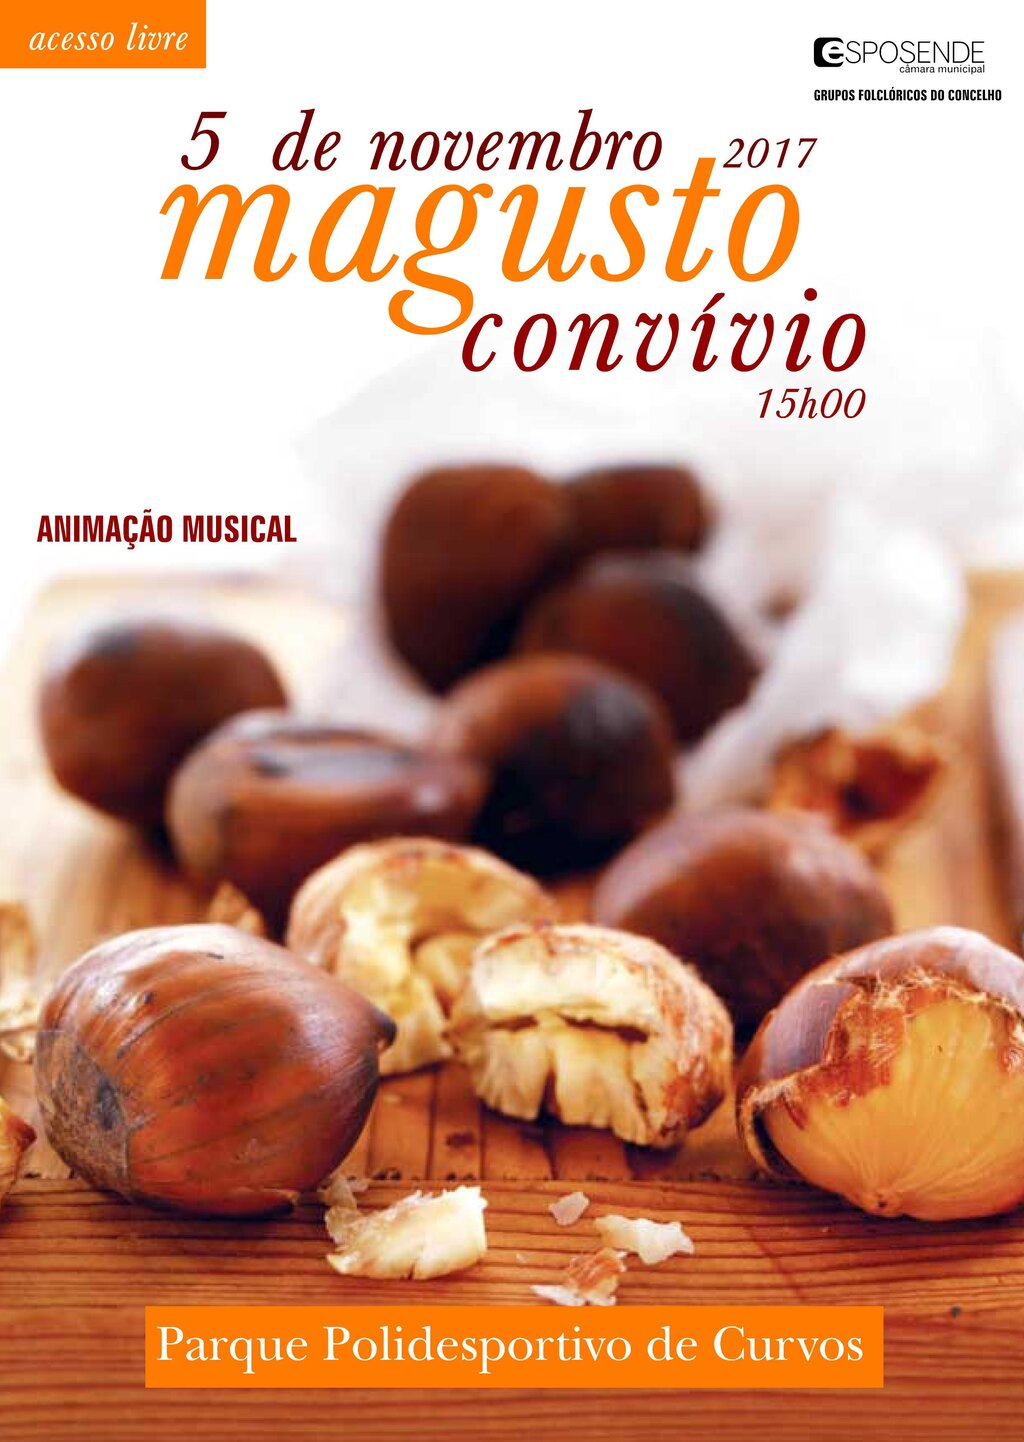 Magusto17 1 1024 2500